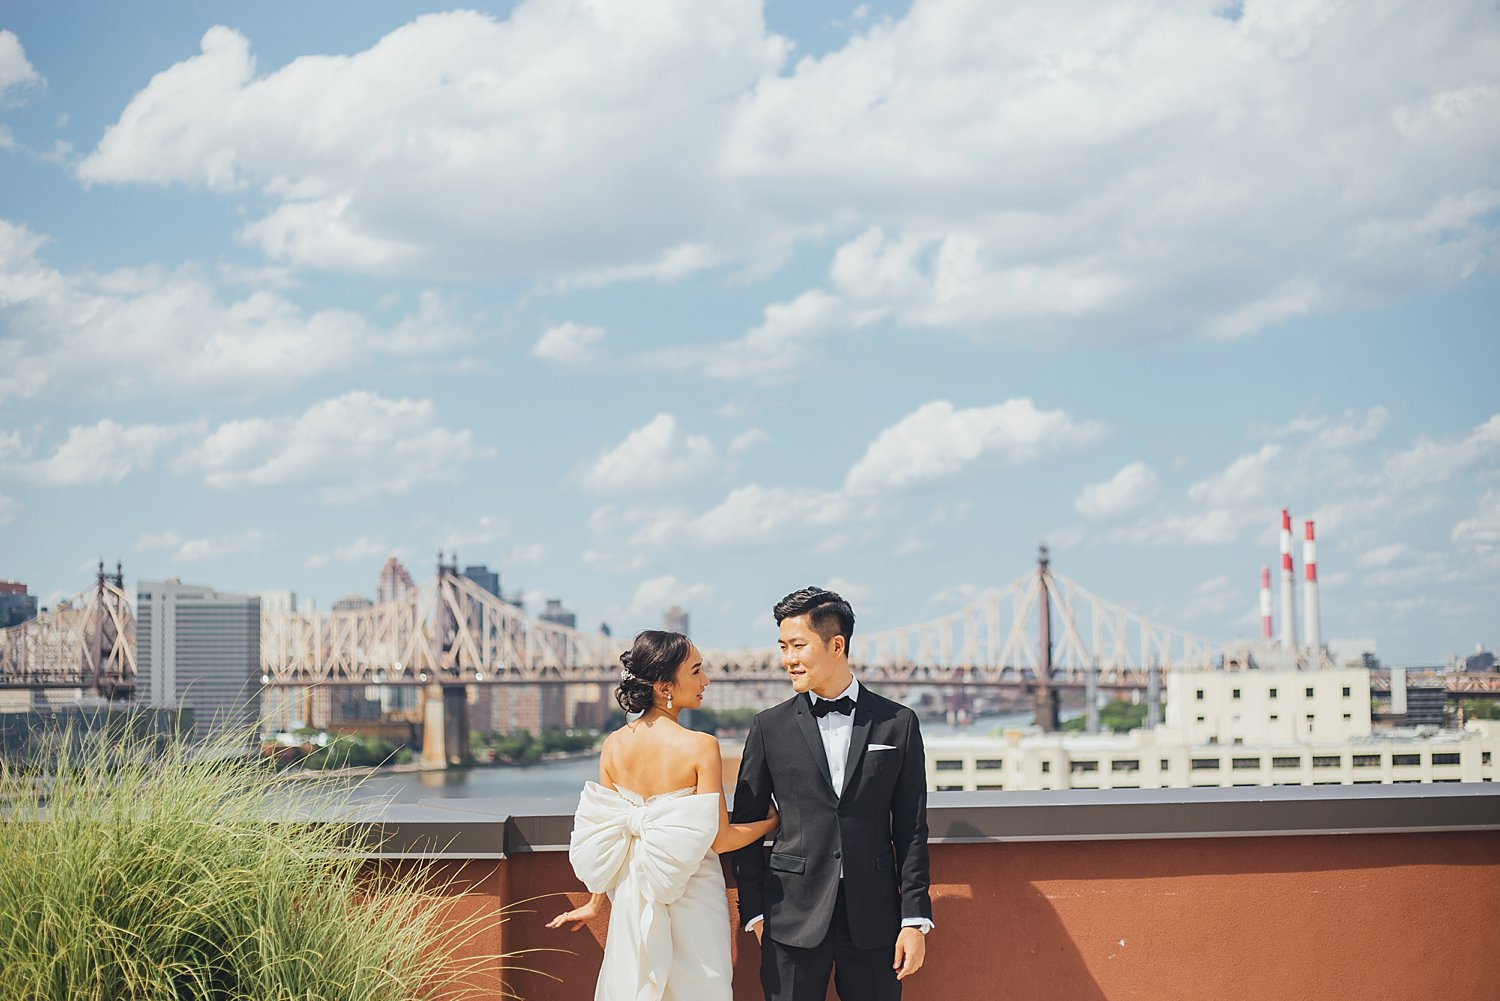 nyc-wedding-photography-nj-tri-state-cinematography-intothestory-by-moo-jae_0319.jpg